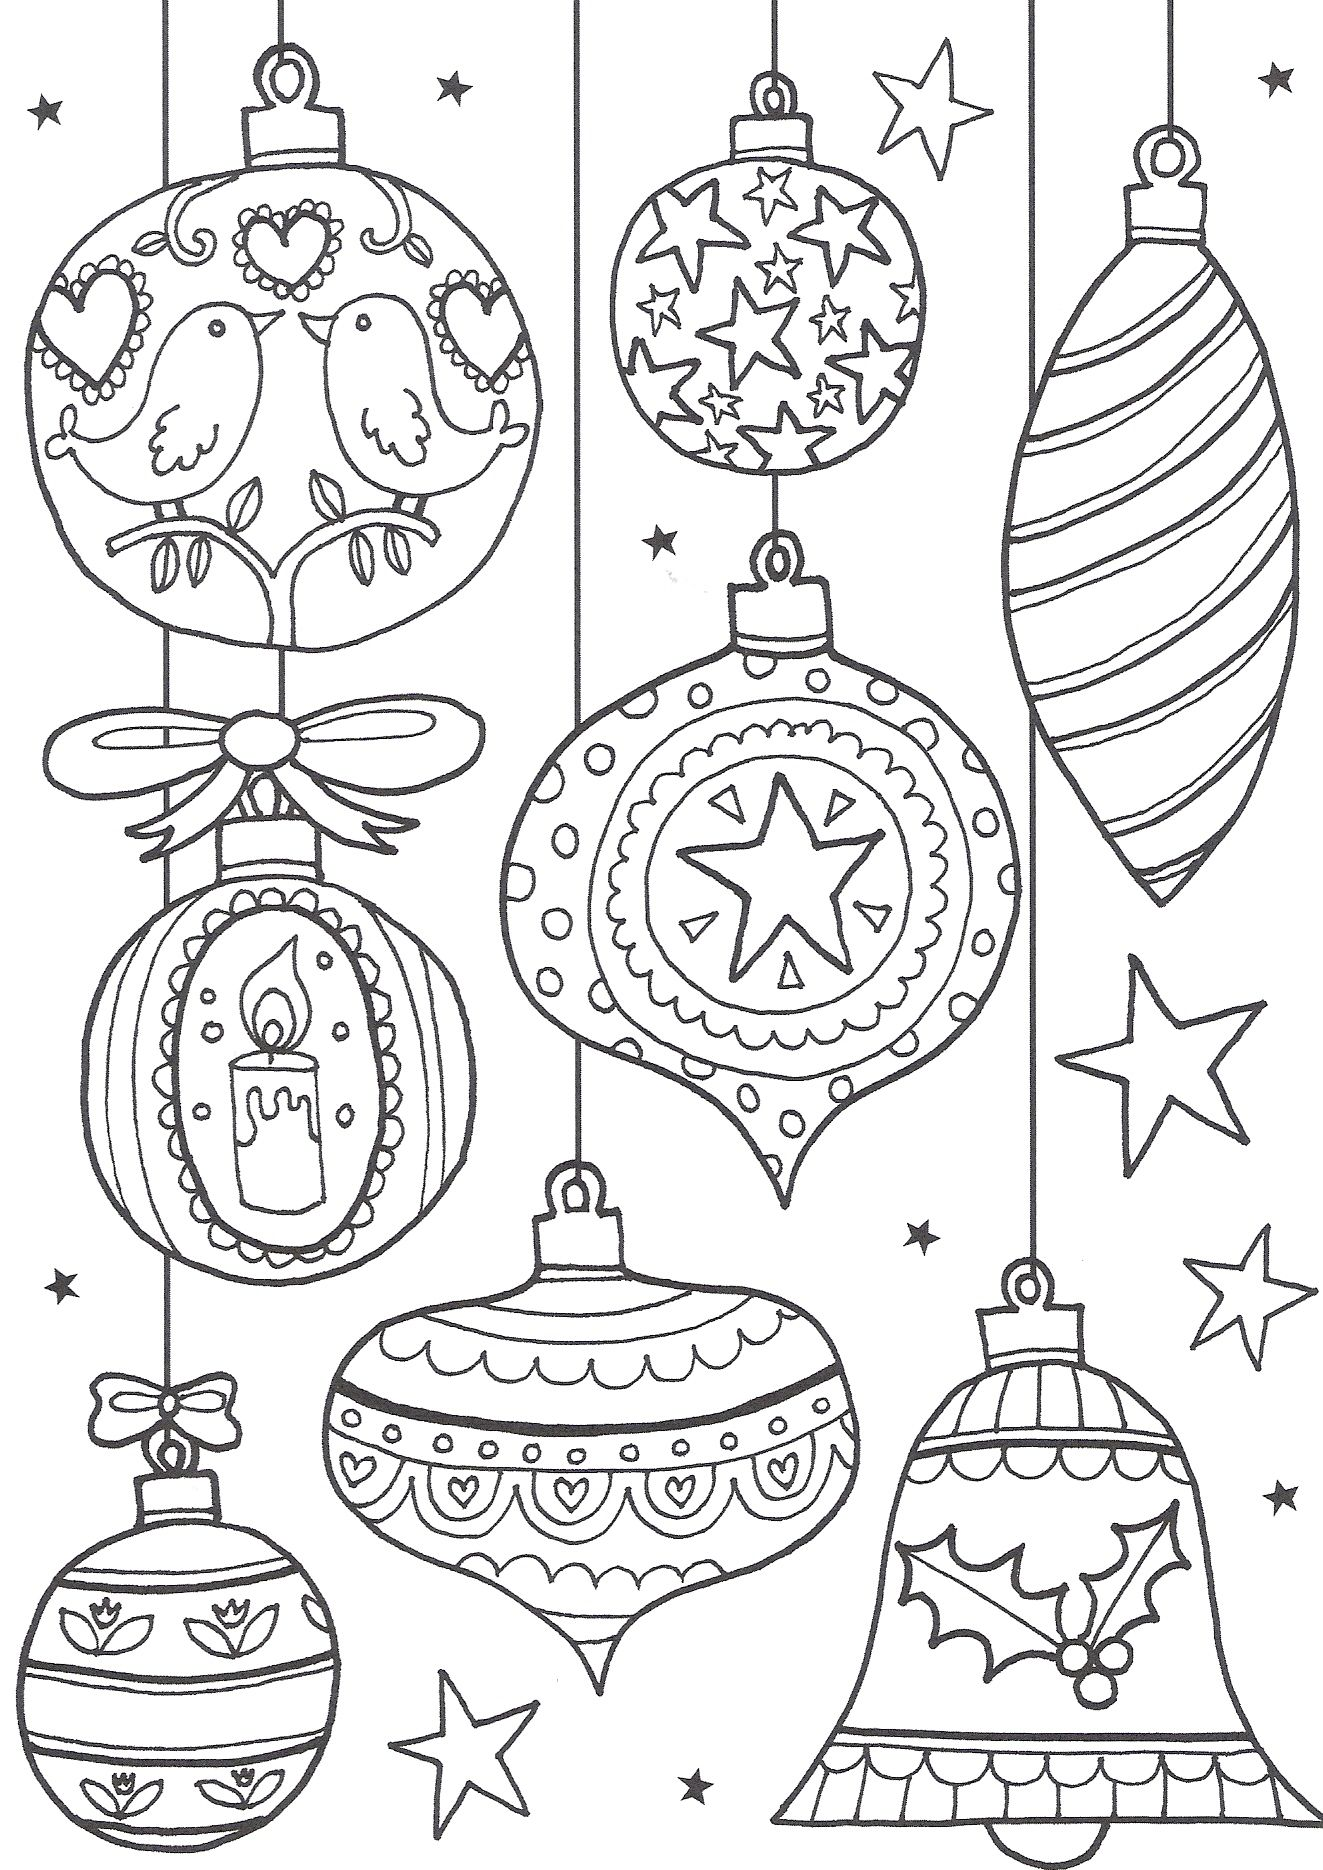 Free Printable Christmas Coloring Pages For Adults Only With Colouring The Ultimate Roundup